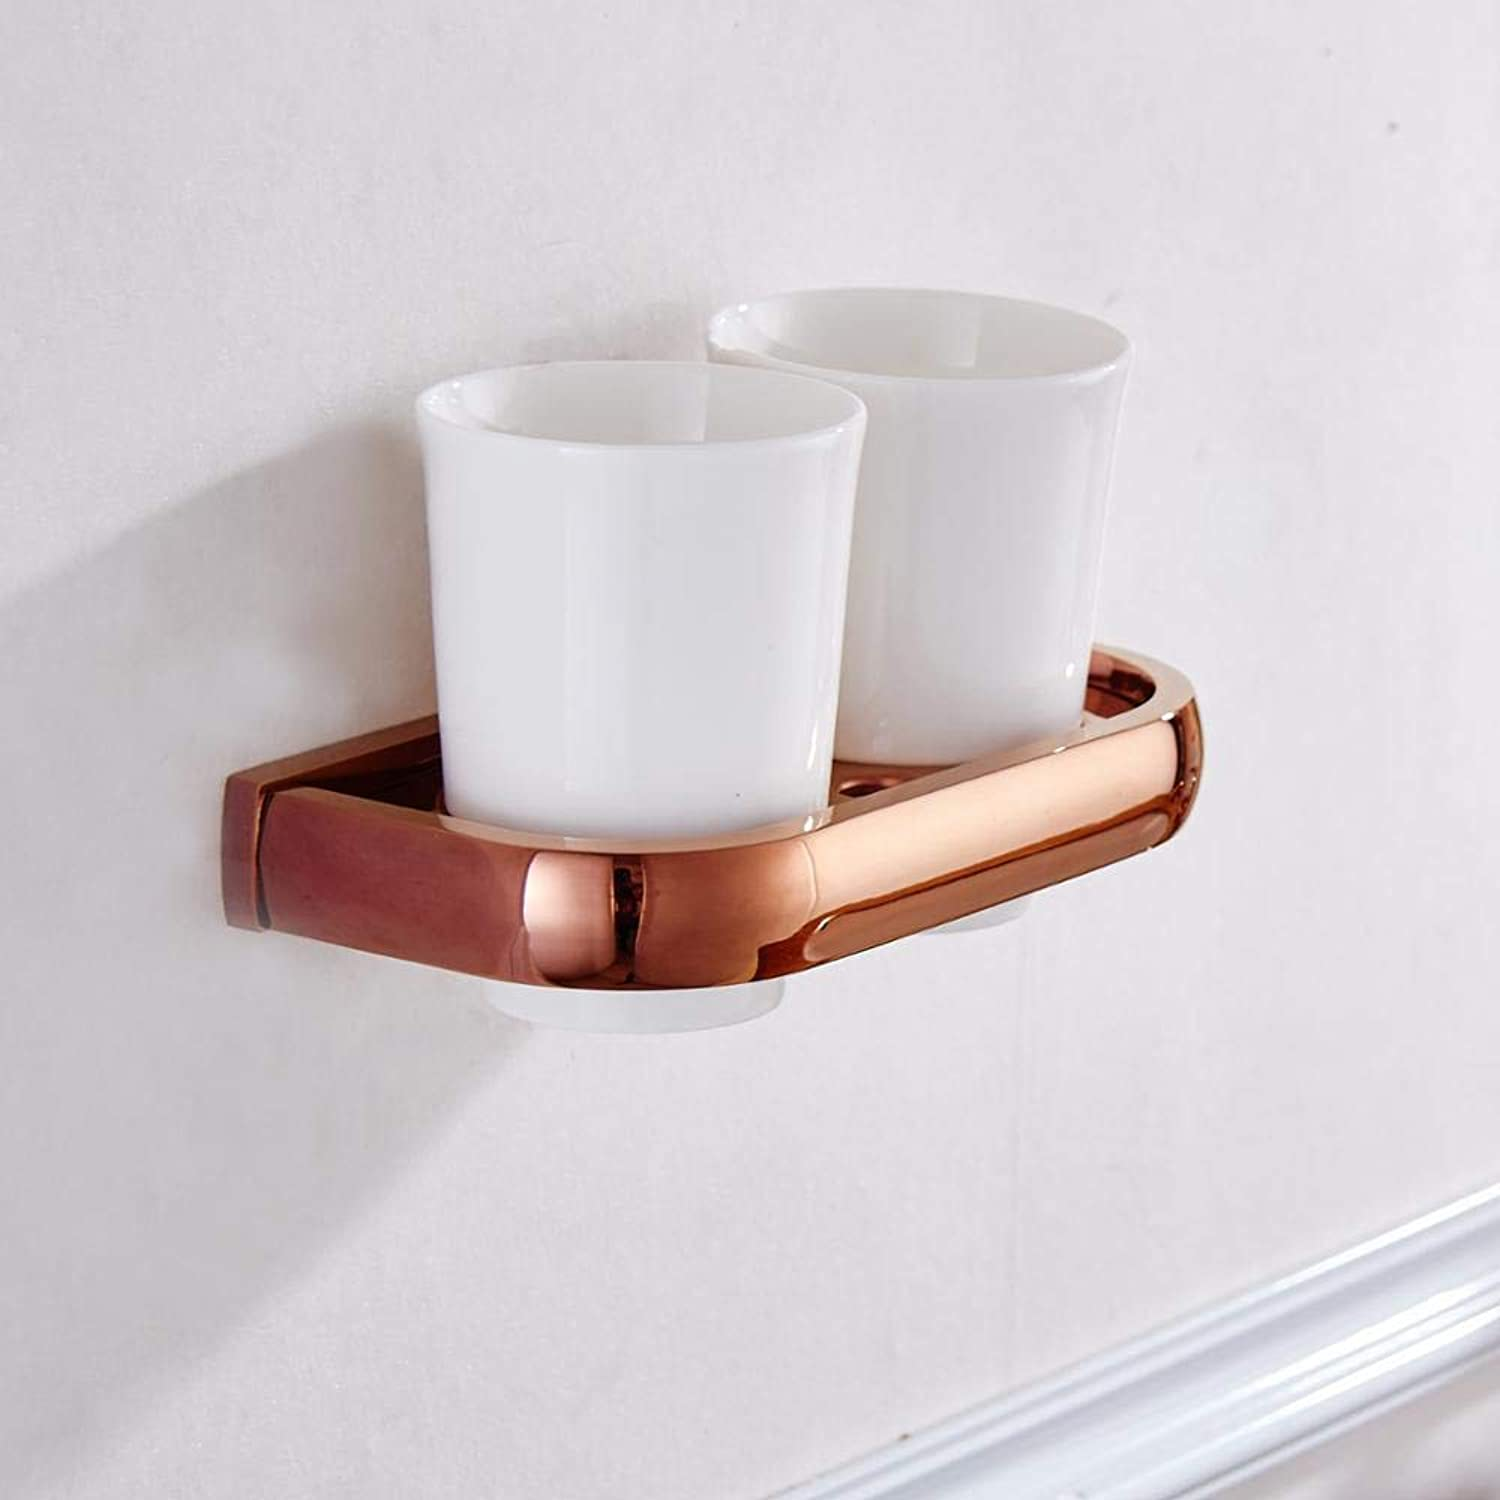 LUDSUY pink gold color Copper Bathroom Accessories Double Tumbler Holder Toothbrush Holder Ceramic Cup